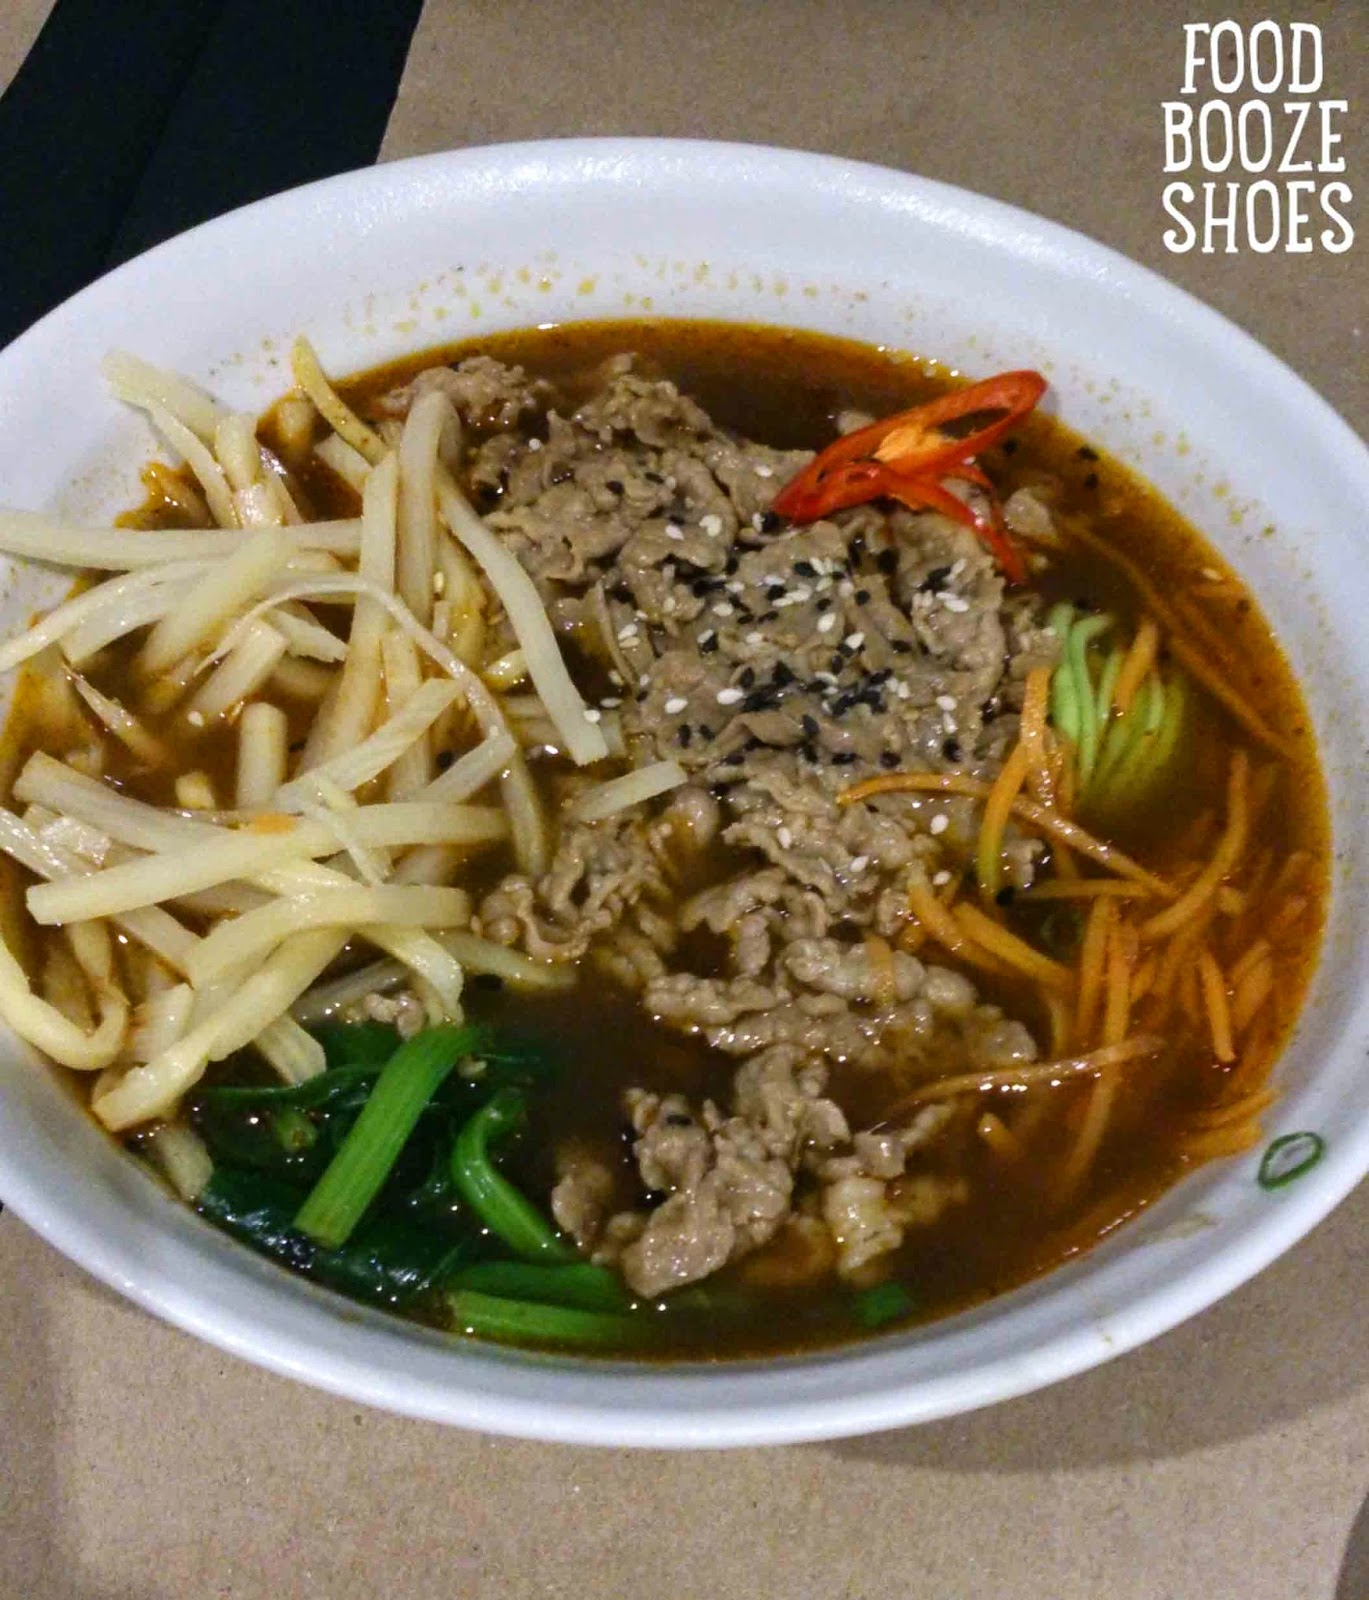 Food, booze and shoes: Noodle your way to dinner at Chefs Gallery ...